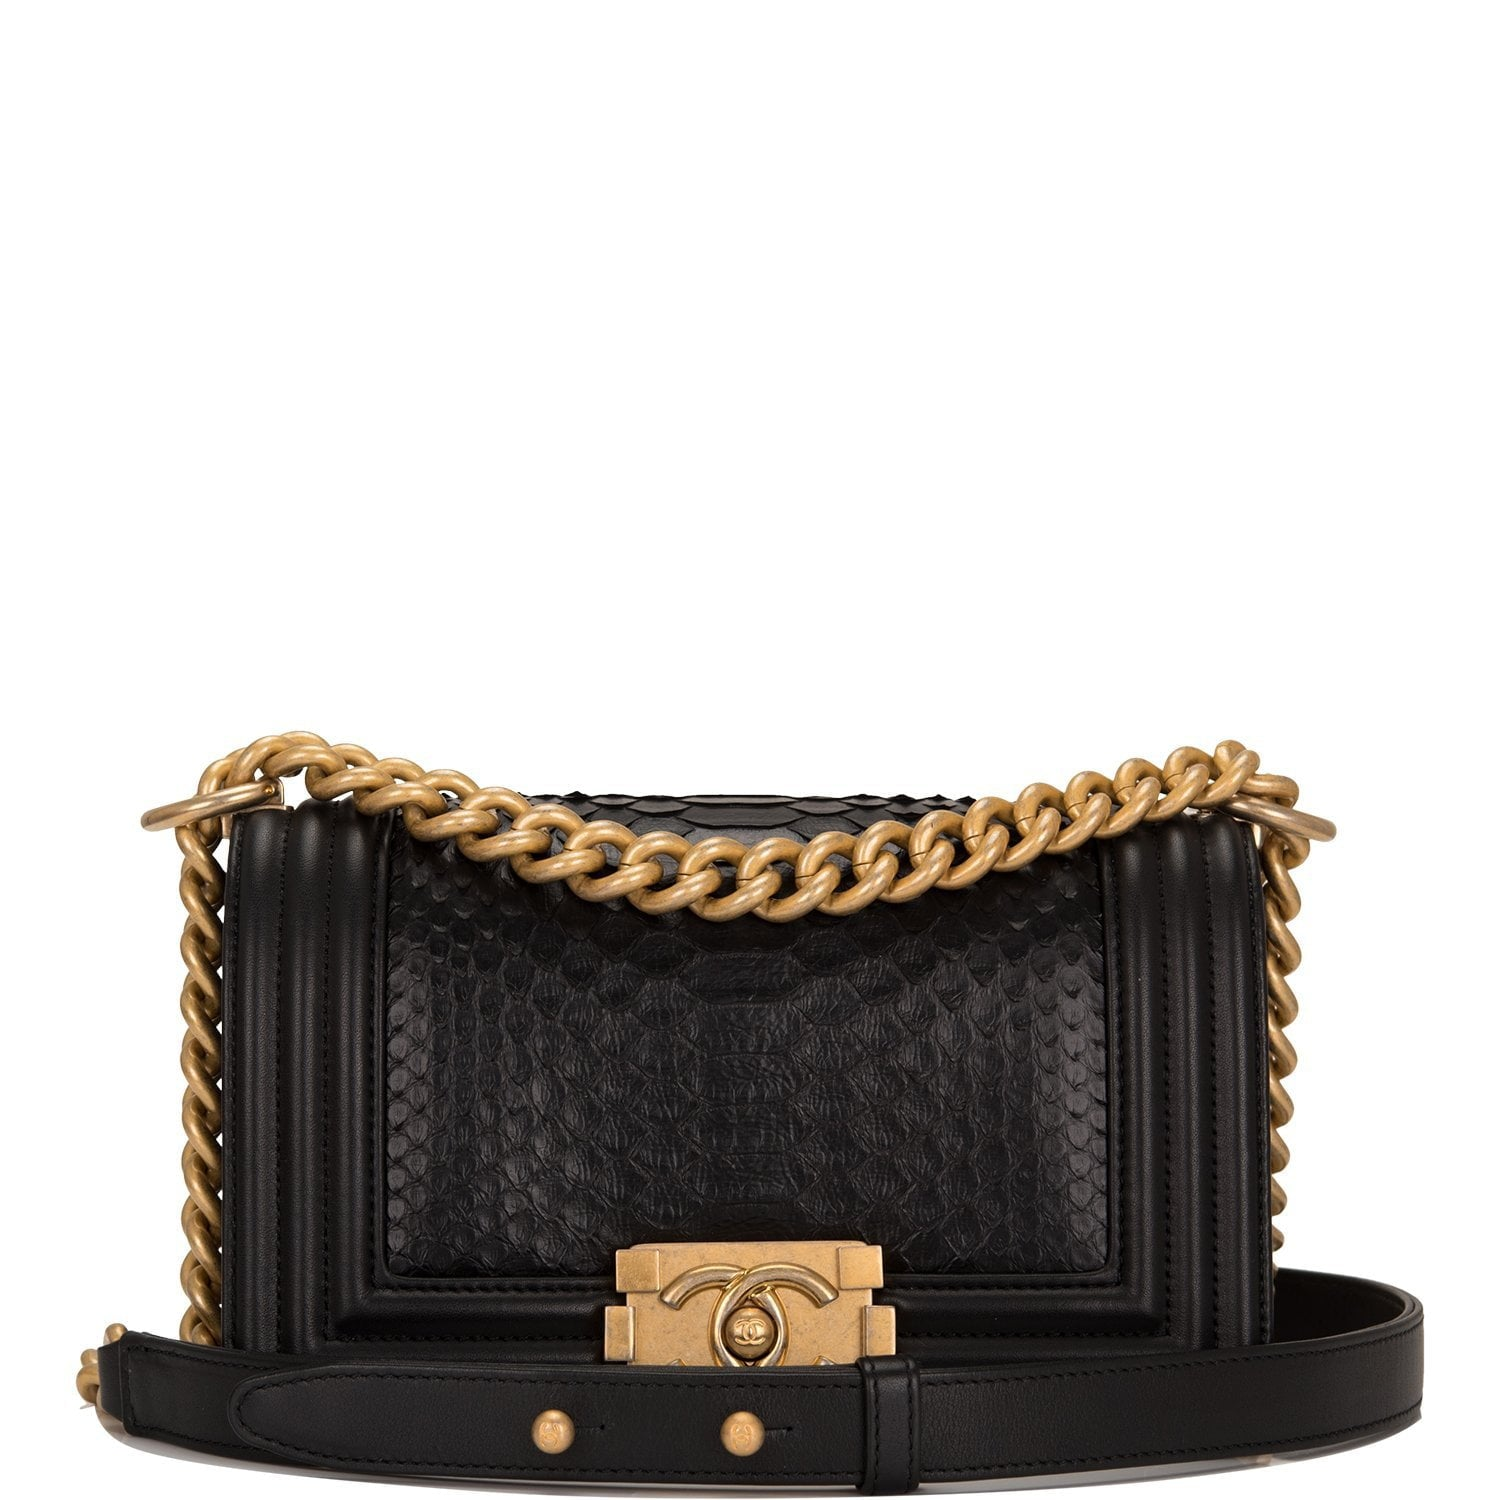 95e64d10aade Chanel Small Boy Bags – Madison Avenue Couture